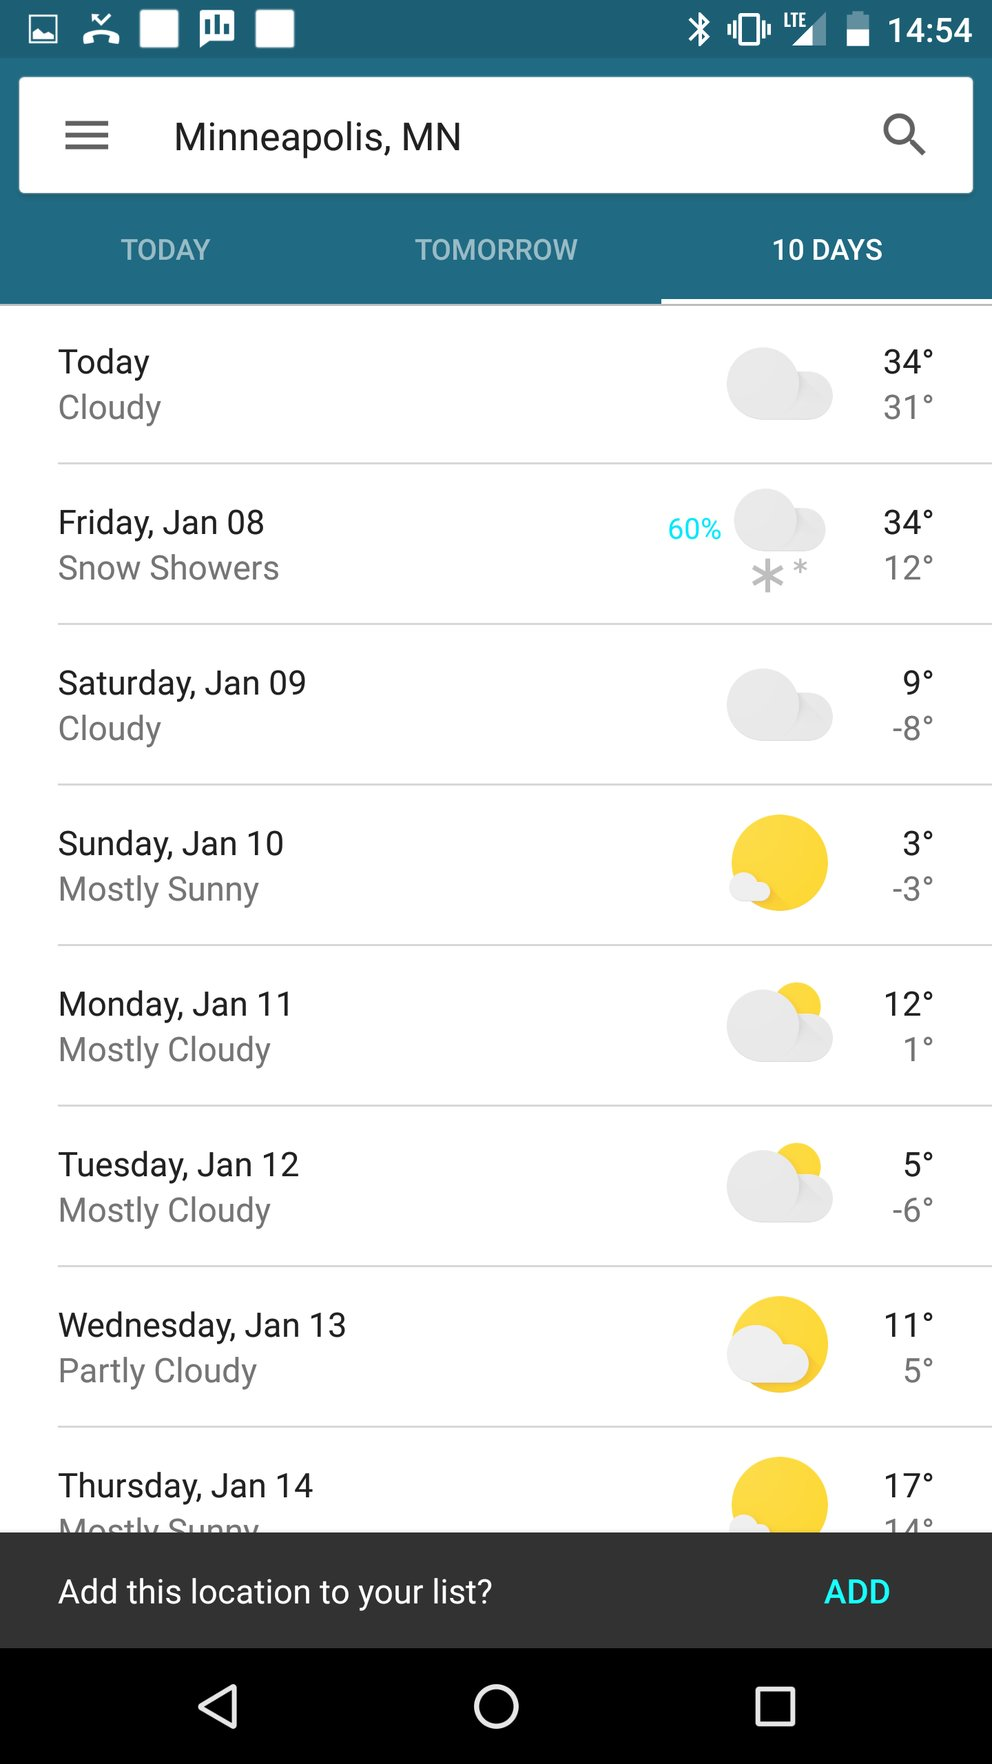 google-now-weather-card-10-days